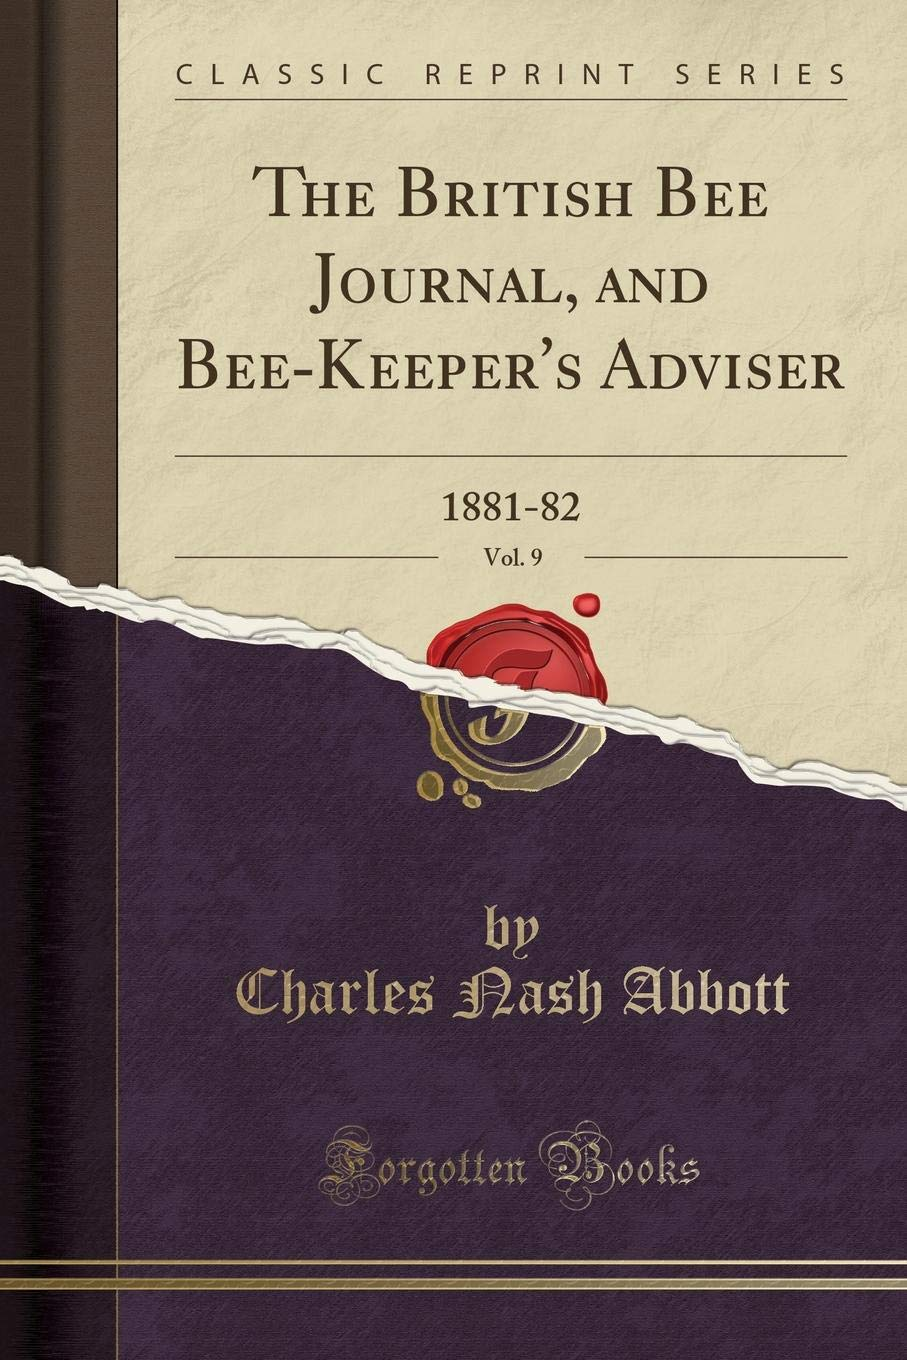 Download The British Bee Journal, and Bee-Keeper's Adviser, Vol. 9: 1881-82 (Classic Reprint) ebook